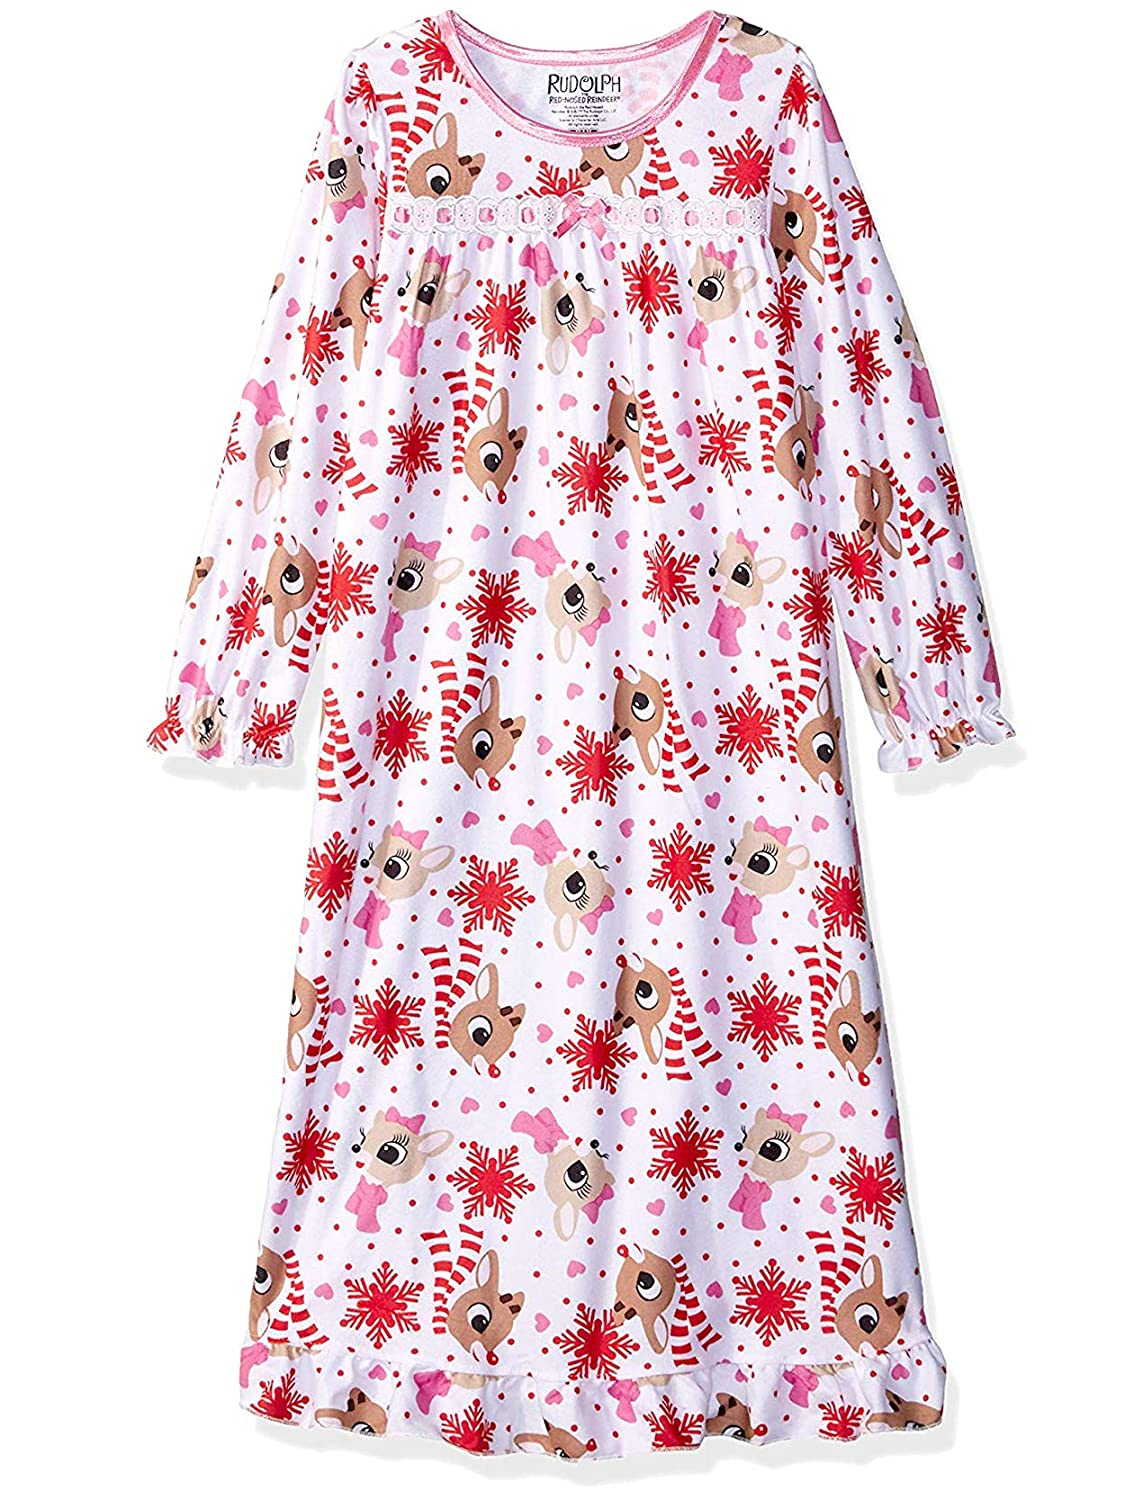 Rudolph The Red-Nosed Reindeer Girls Christmas Holiday Granny Gown Nightgown manufacturer